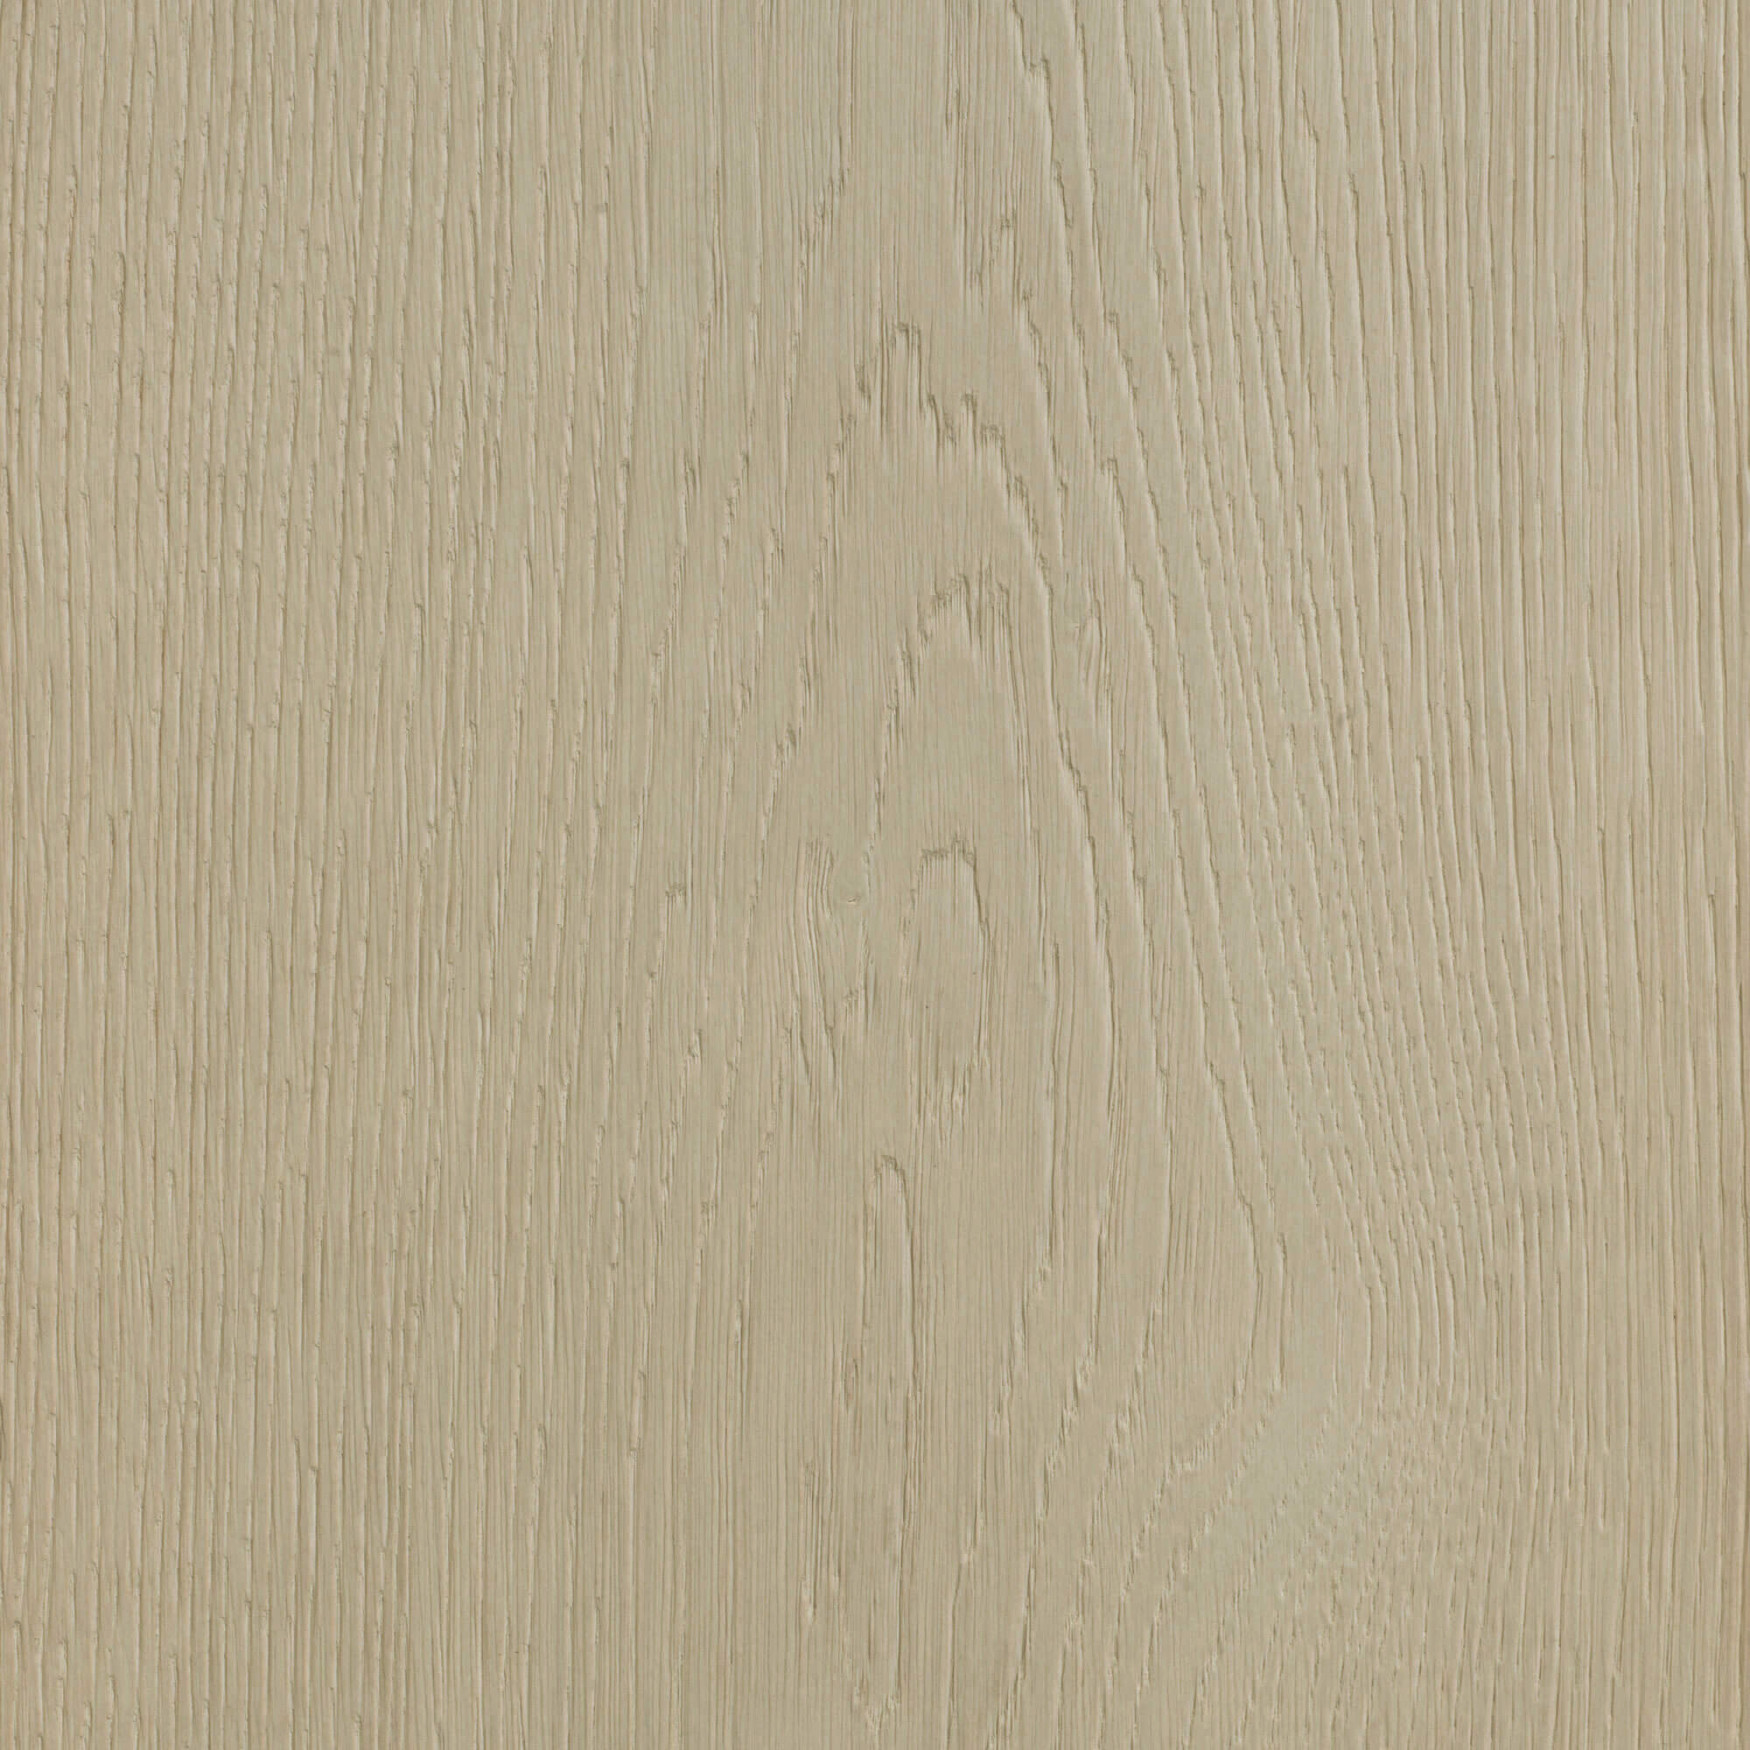 element7-wide-plank-samples-rt-element7-wide-plank-samples-on-1.2